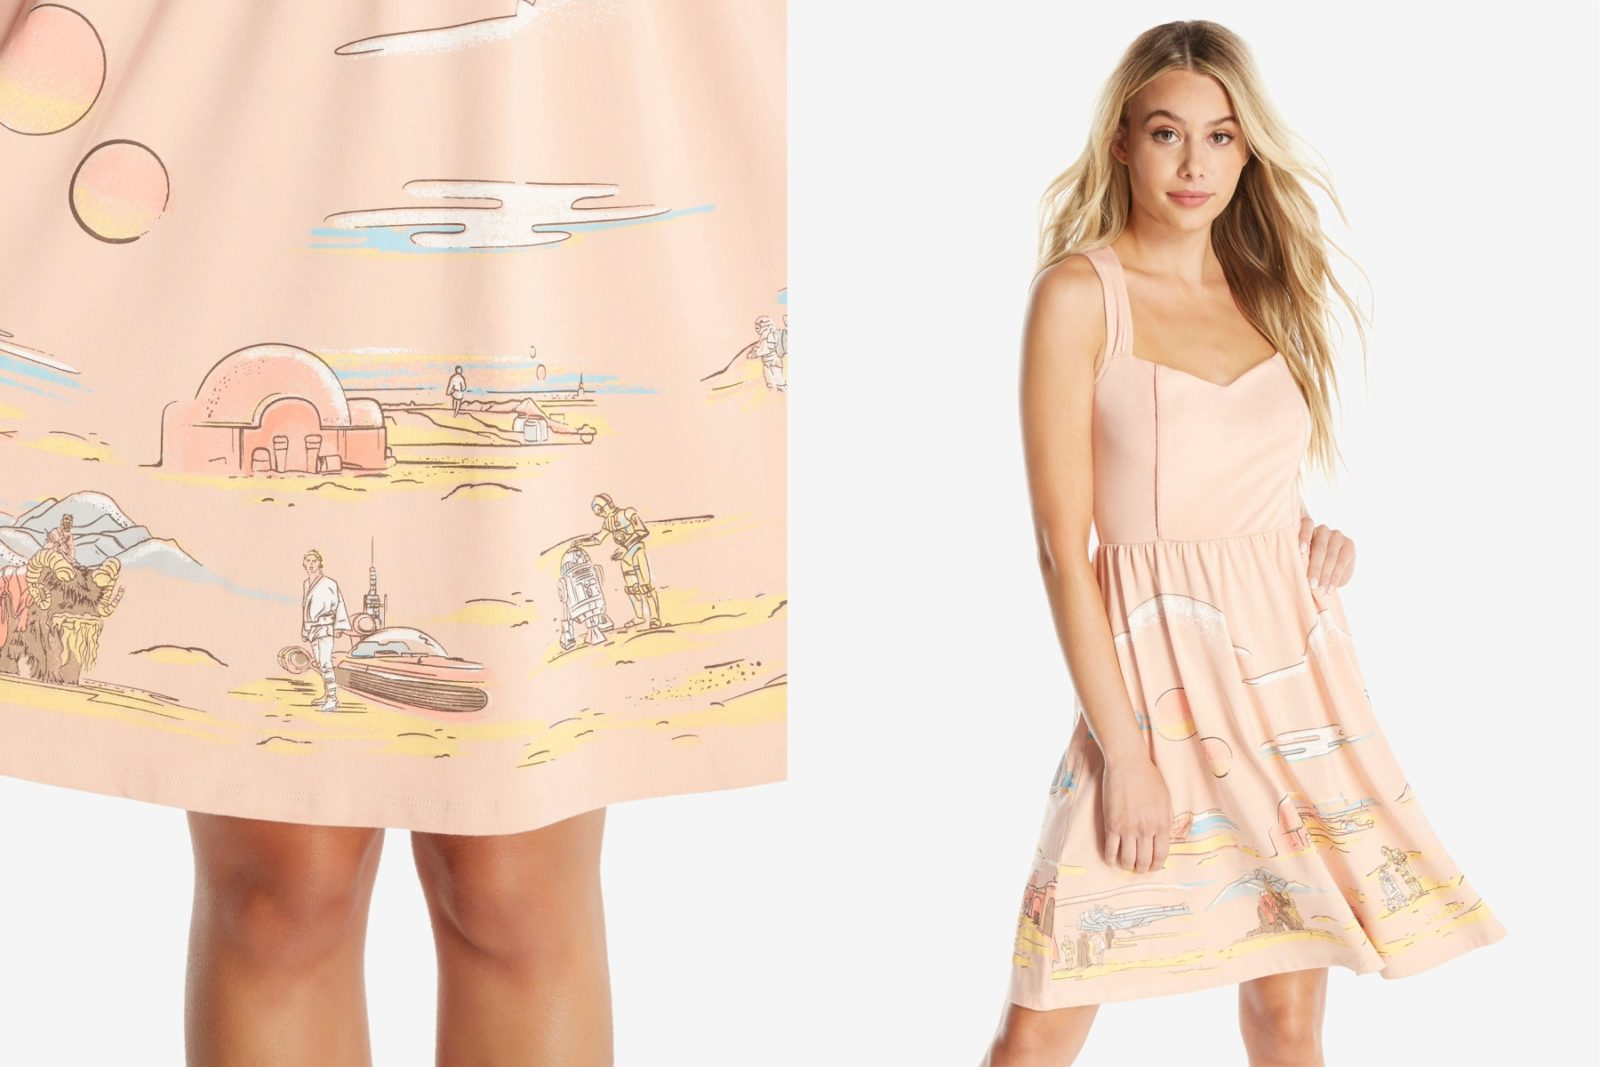 Her Universe x Star Wars Tatooine Dress